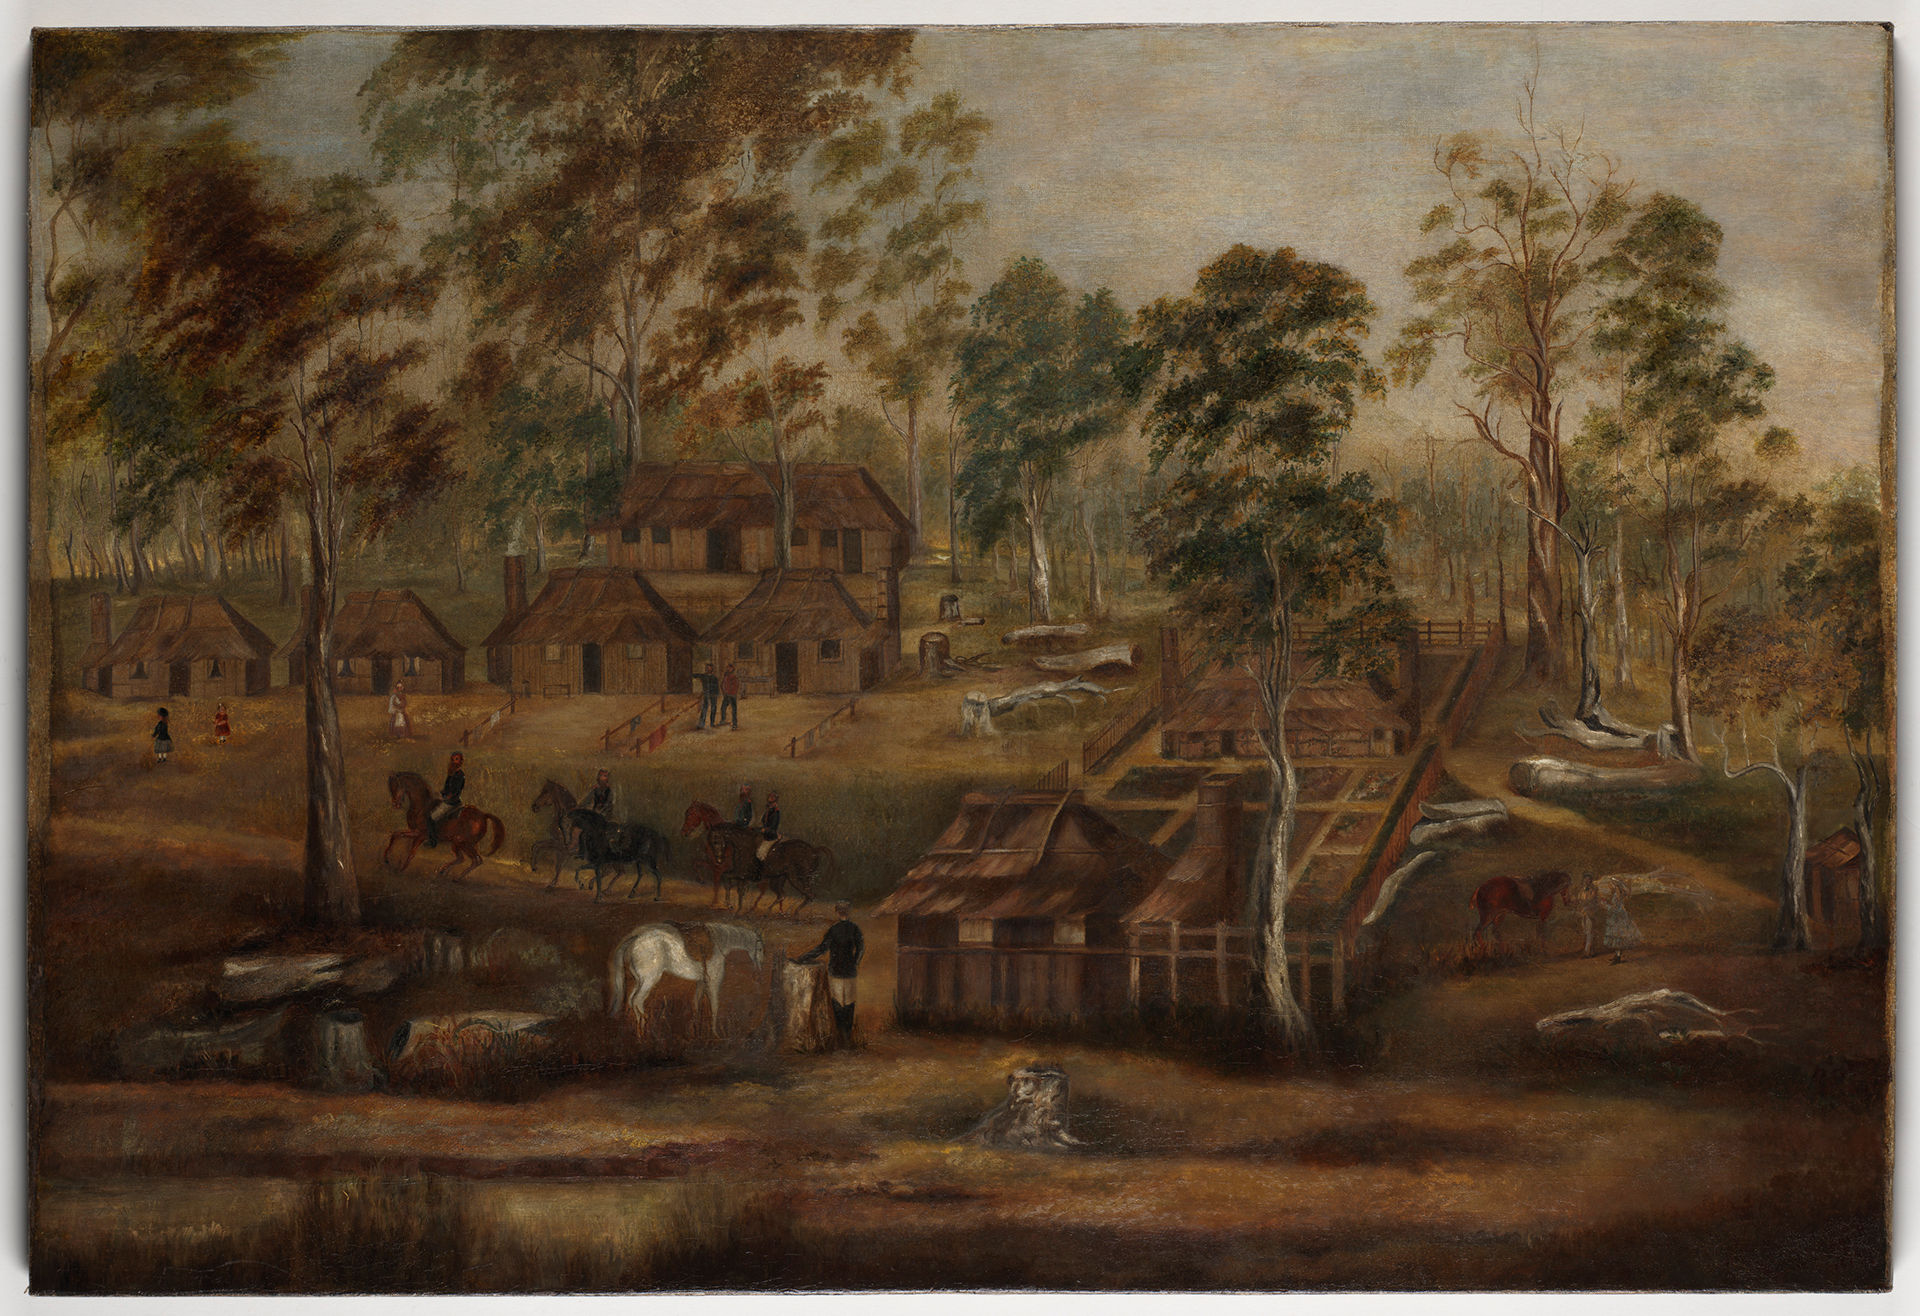 The Gold Commissioner's station at Timbarra, New South Wales, ca 1870 / Mrs Louisa Green-Emmott